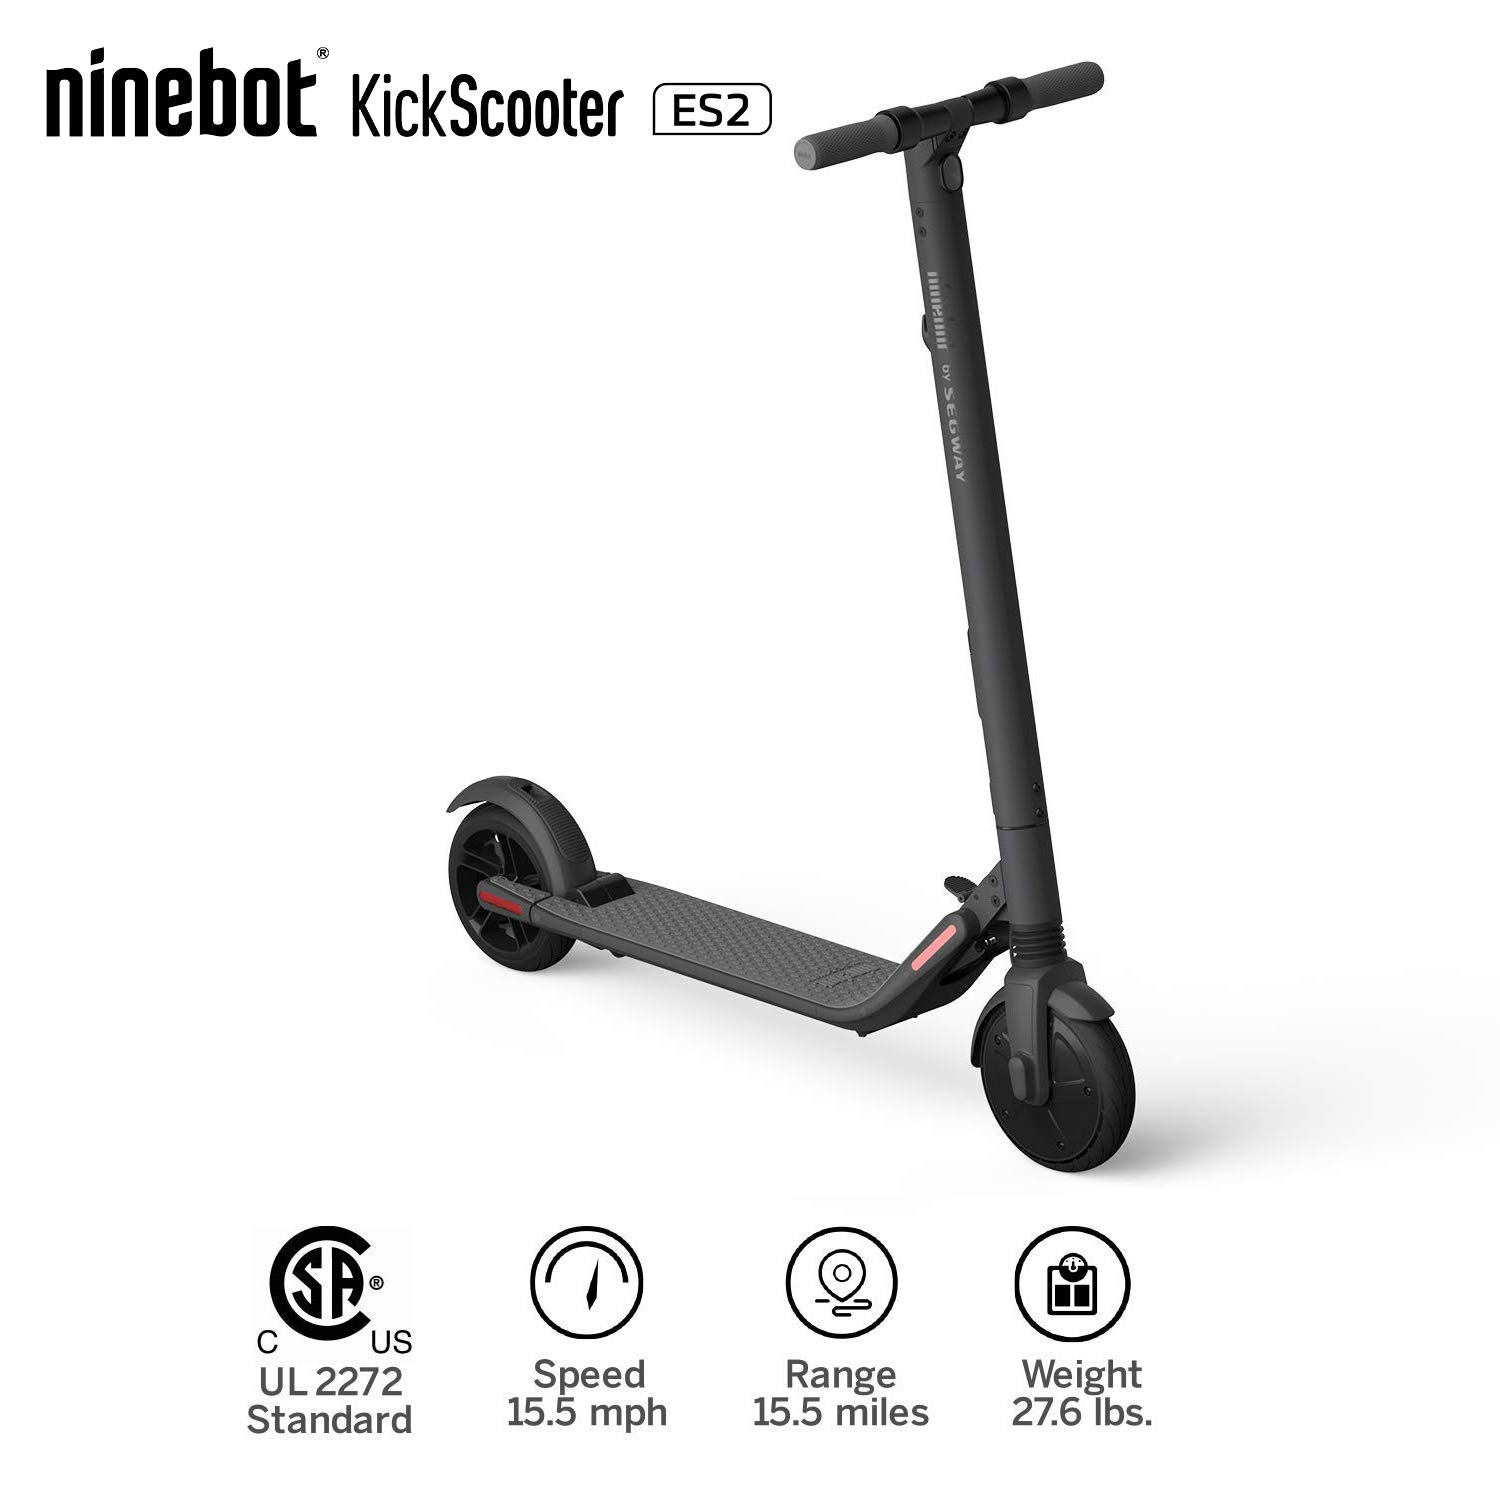 Segway Electric KickScooter Foldable Commuter Scooter, 15.5 Mile Range, 15.5 mph Top Speed, Cruise Control, Bluetooth Mobile App Connectivity for Adults and Kids(Scooter ES2)